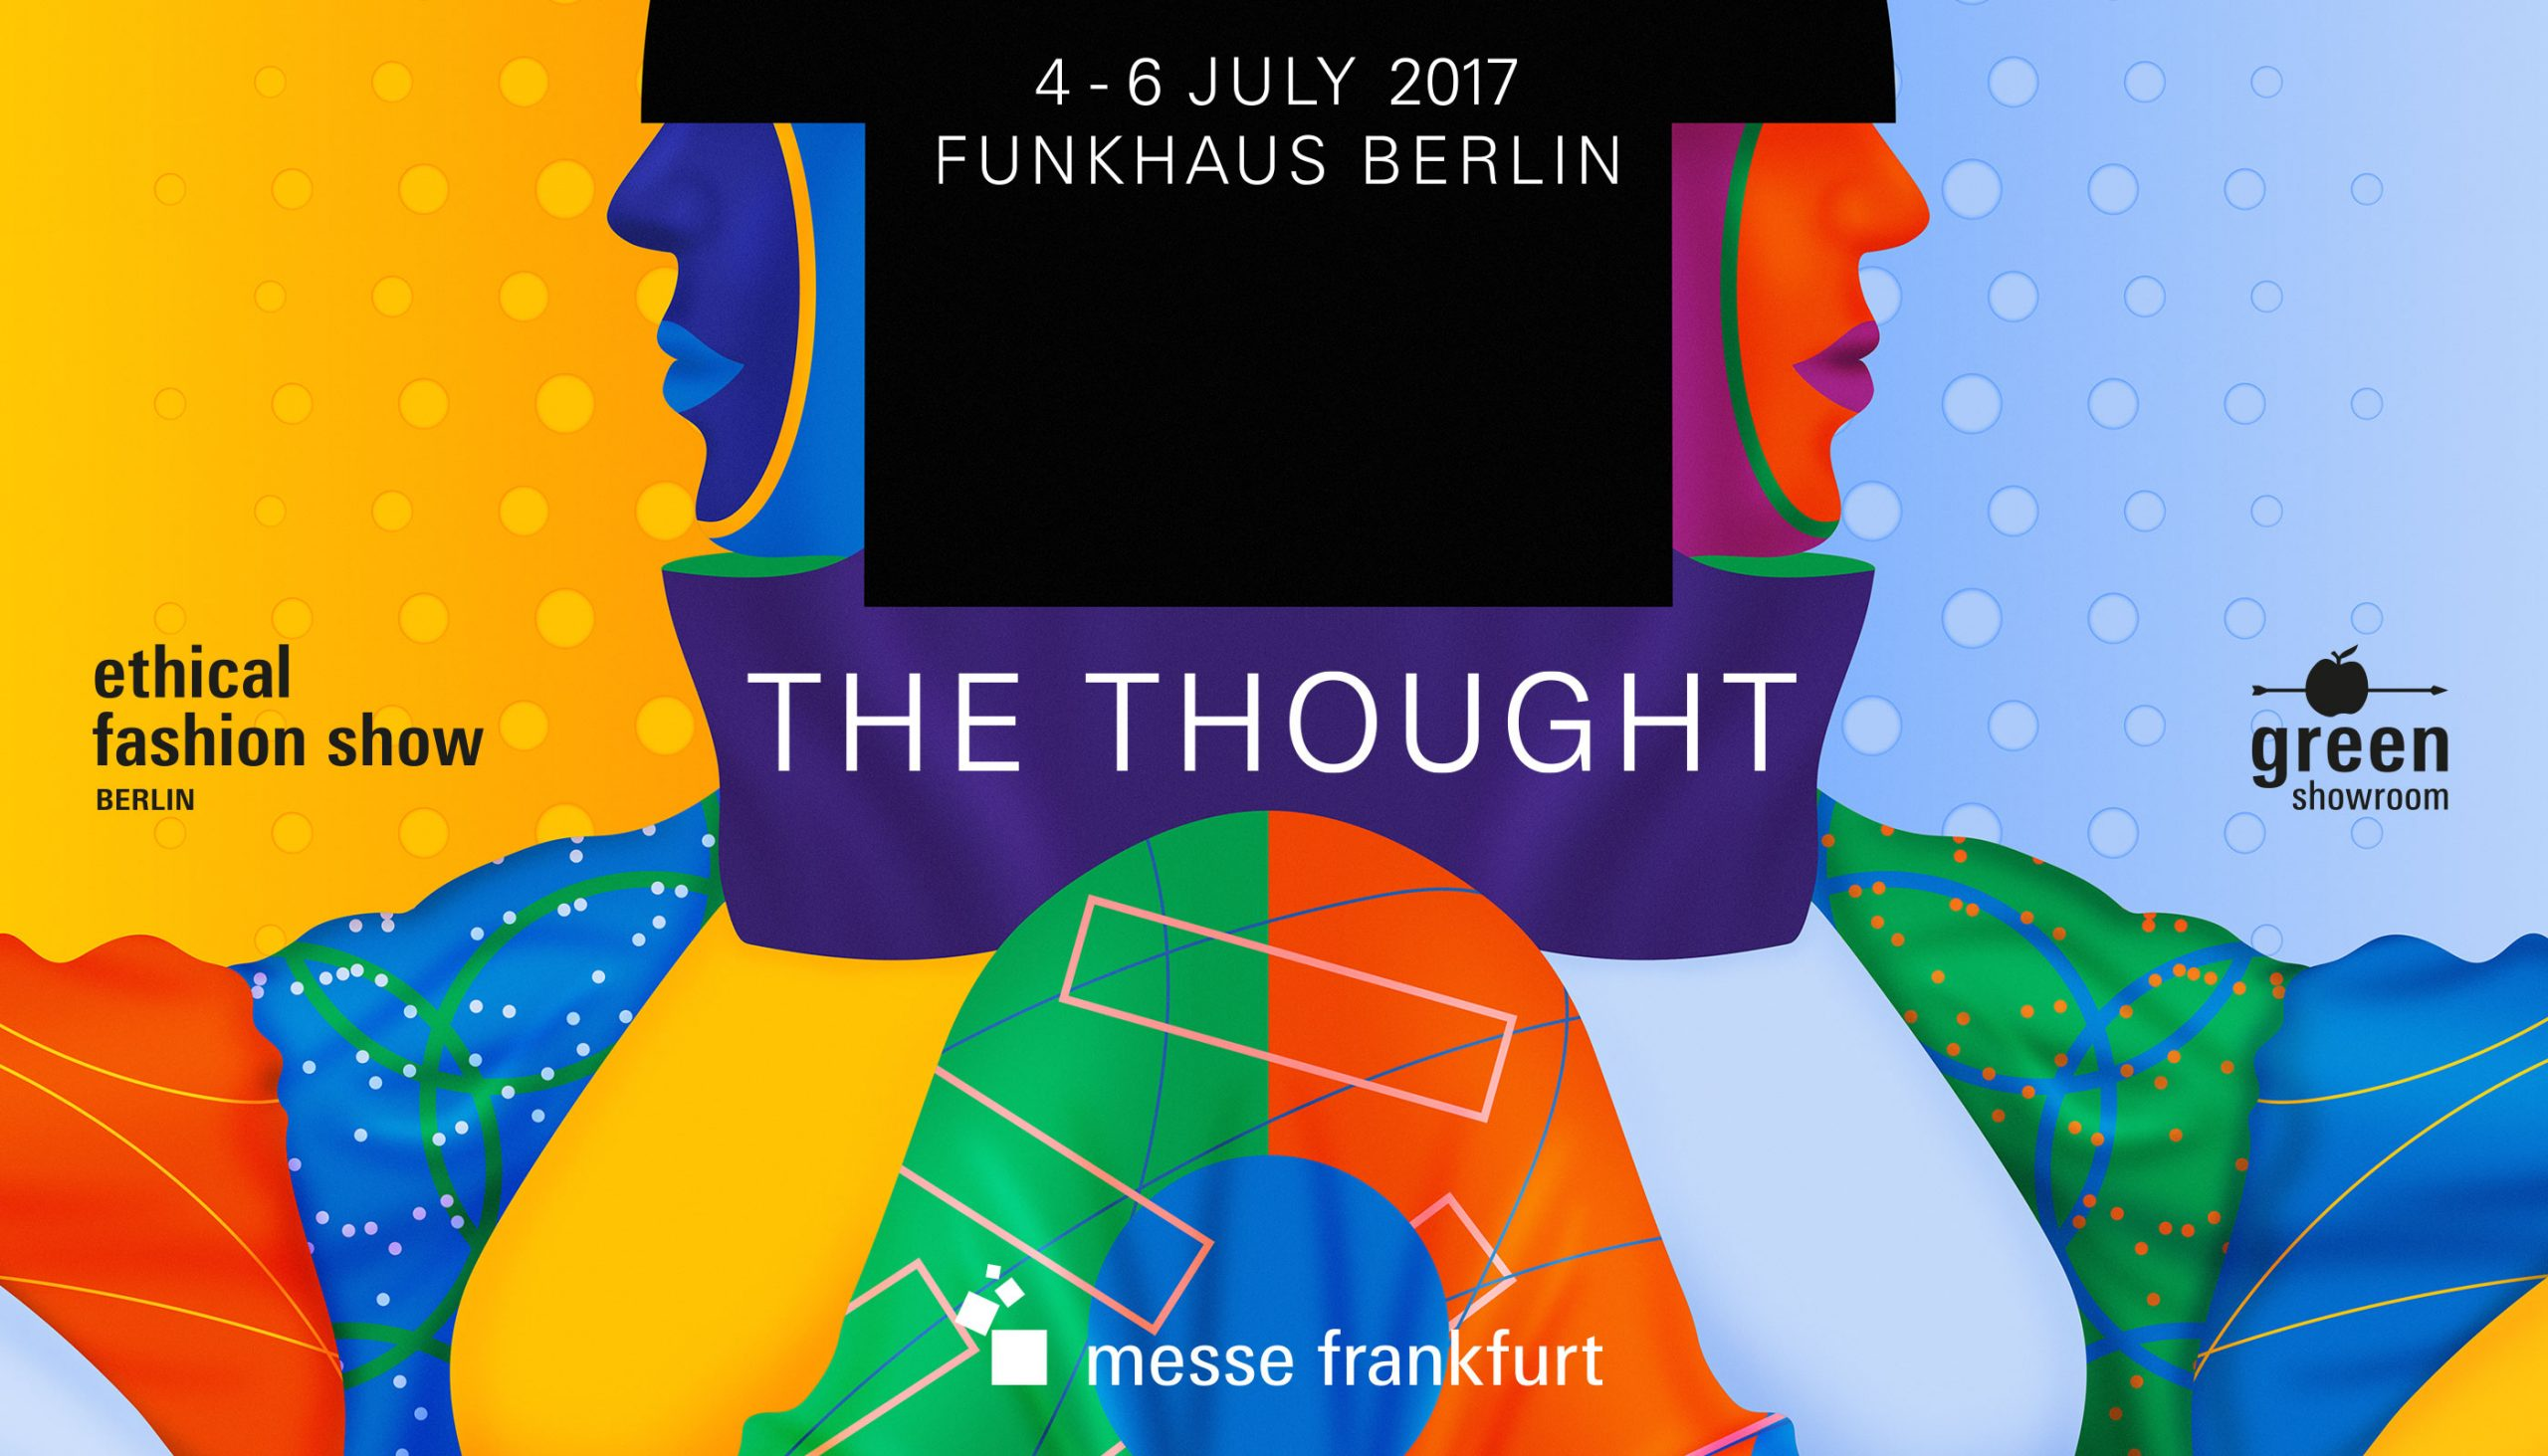 Messe Frankfurt – Ethical Fashion Show und Green Showroom Brandbook Detail Typografie Januar Keyvisual Juli 2017 – Uthmöller und Partner